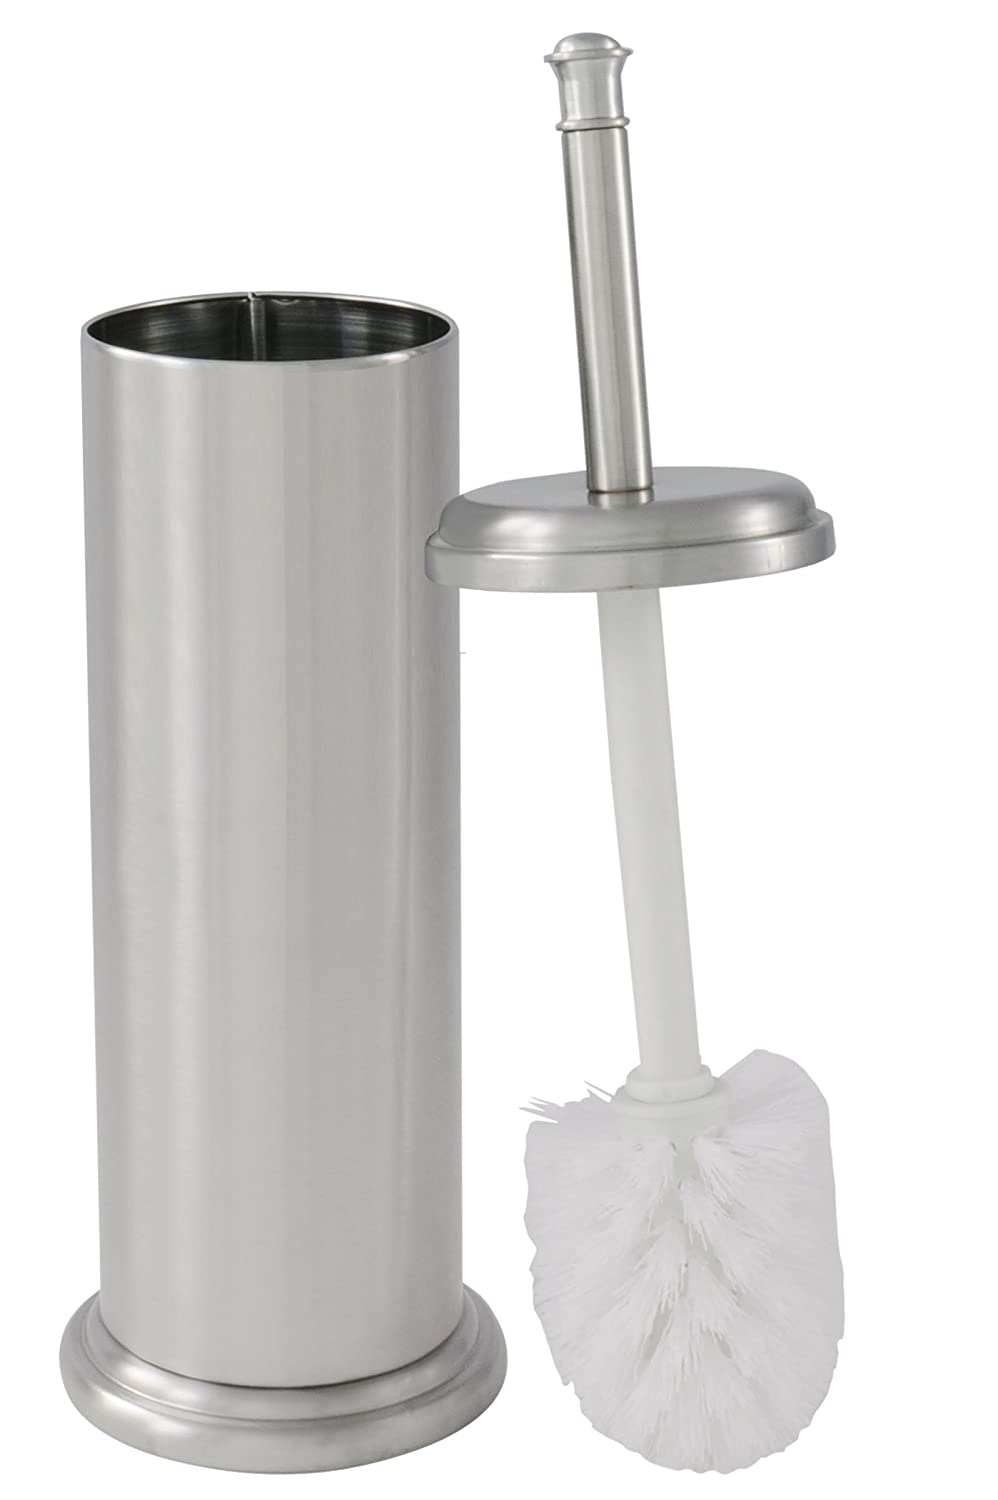 Toilet Brush with Canister Brushed Nickel Finish